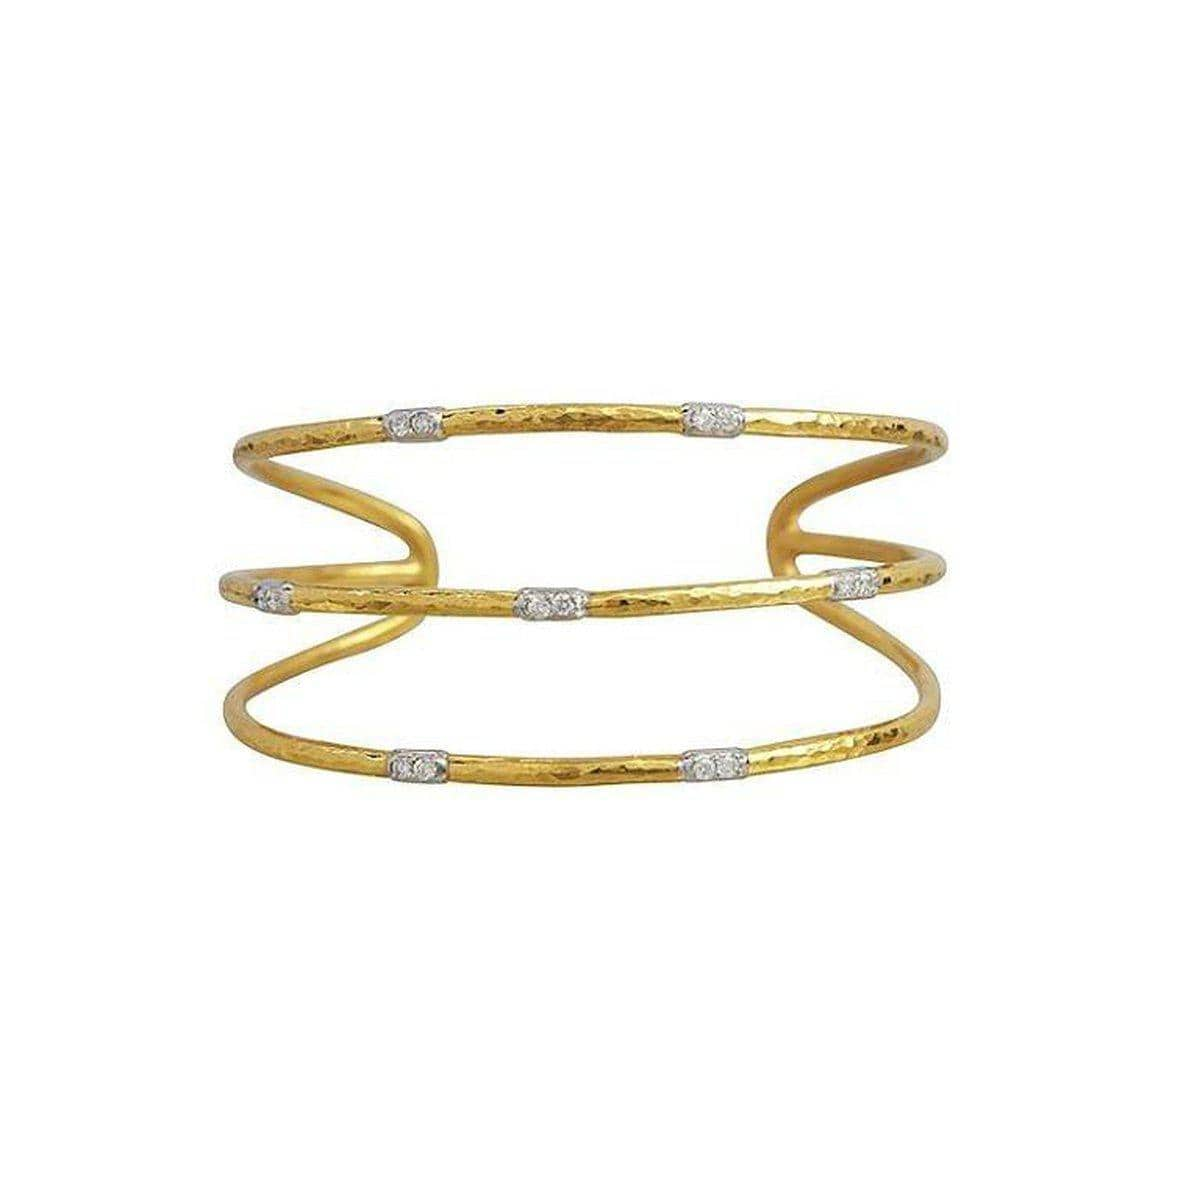 Delicate 22K Gold White Diamond Cuff - CB230-3-7VP2DI-GURHAN-Renee Taylor Gallery